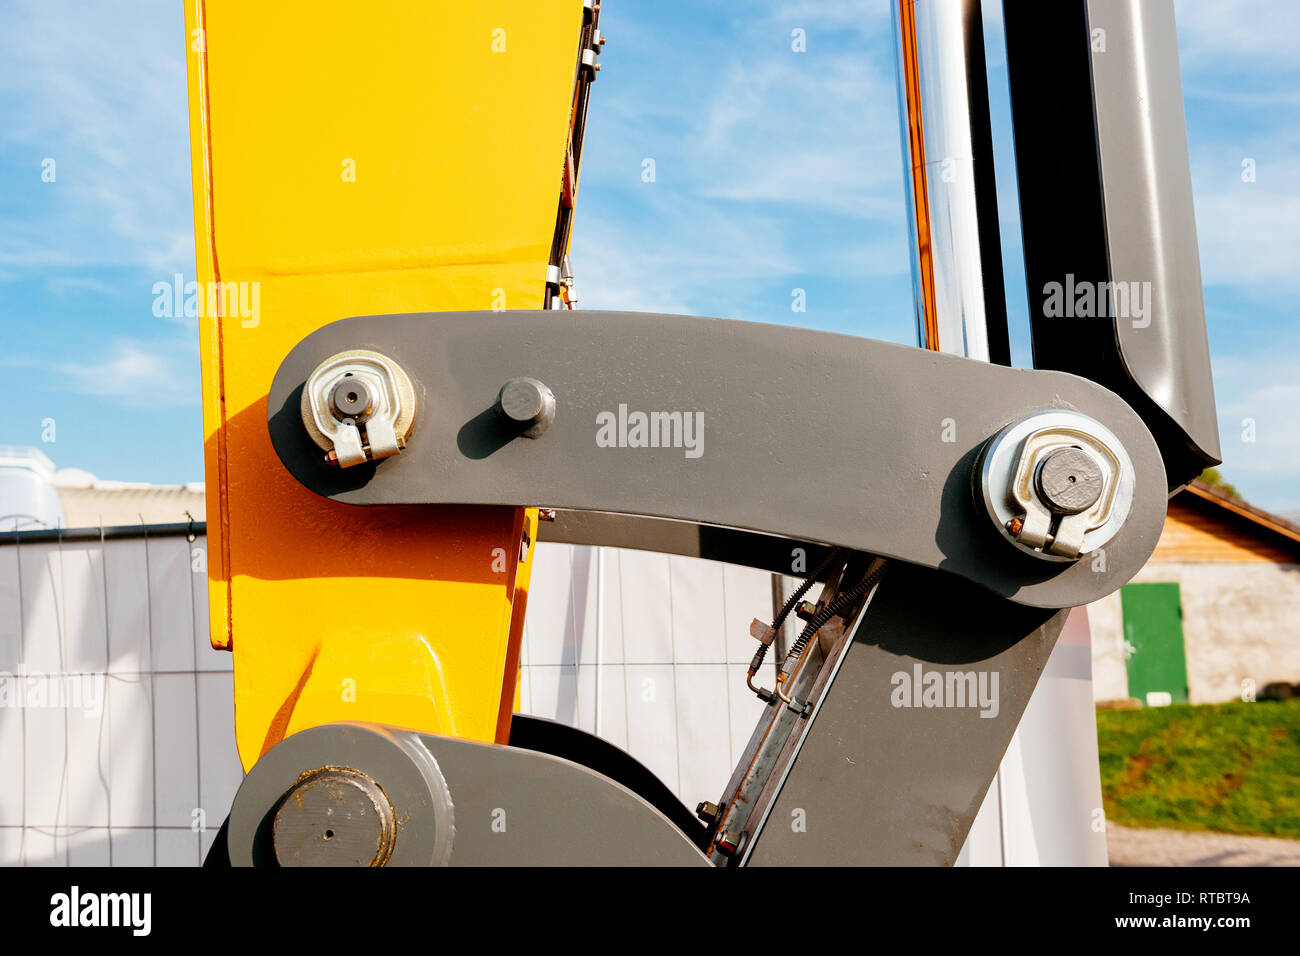 Hydraulic excavator arm - industrial equipment as seen on construction site  - Stock Image